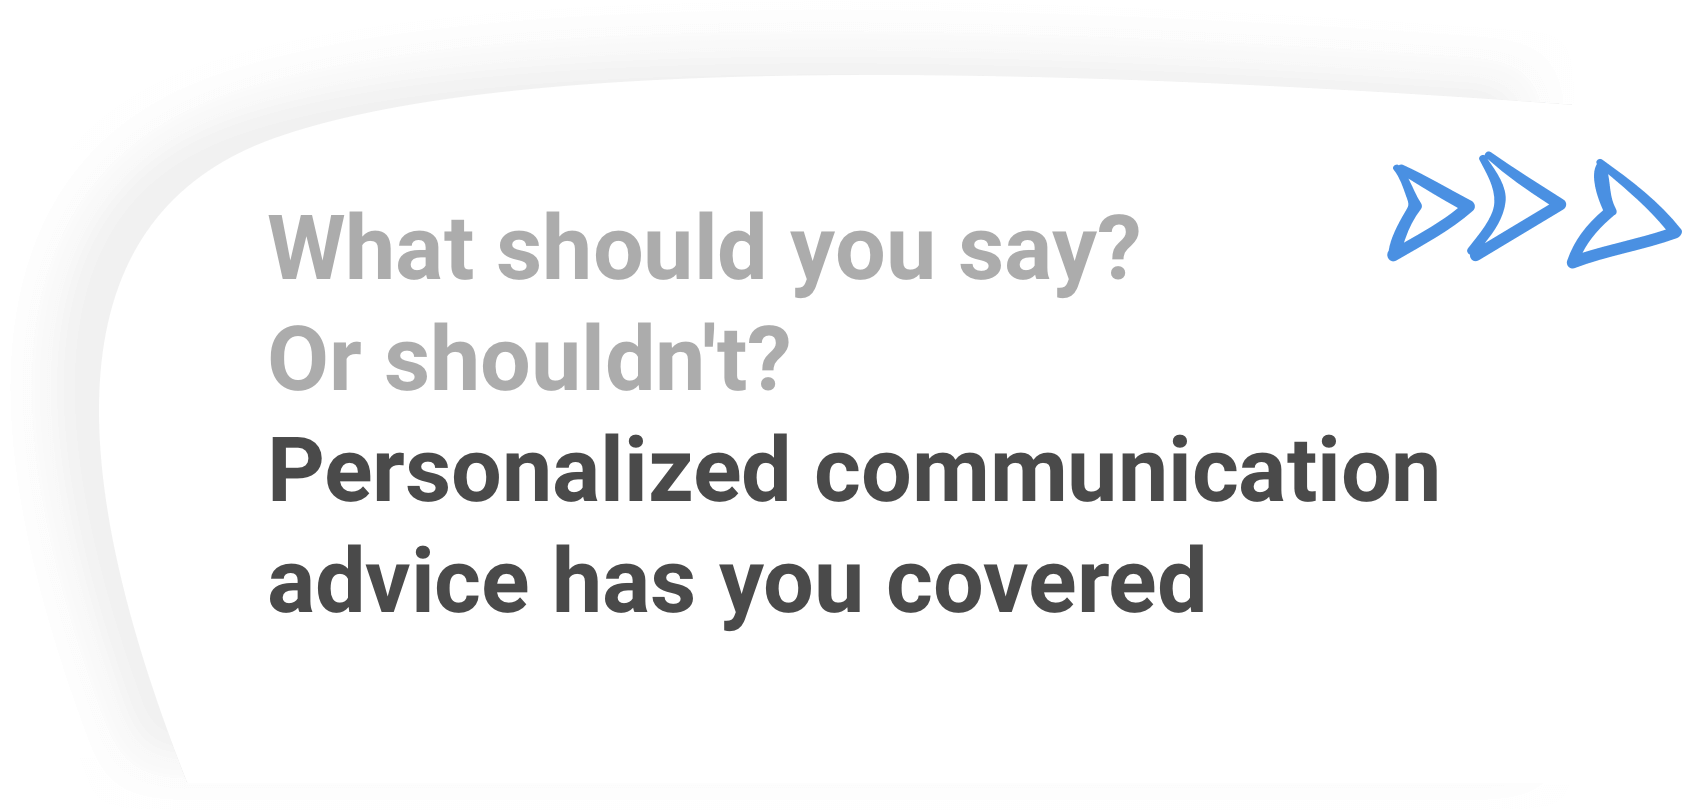 What should you say? Or shouldn't? Personalized communication advice has you covered